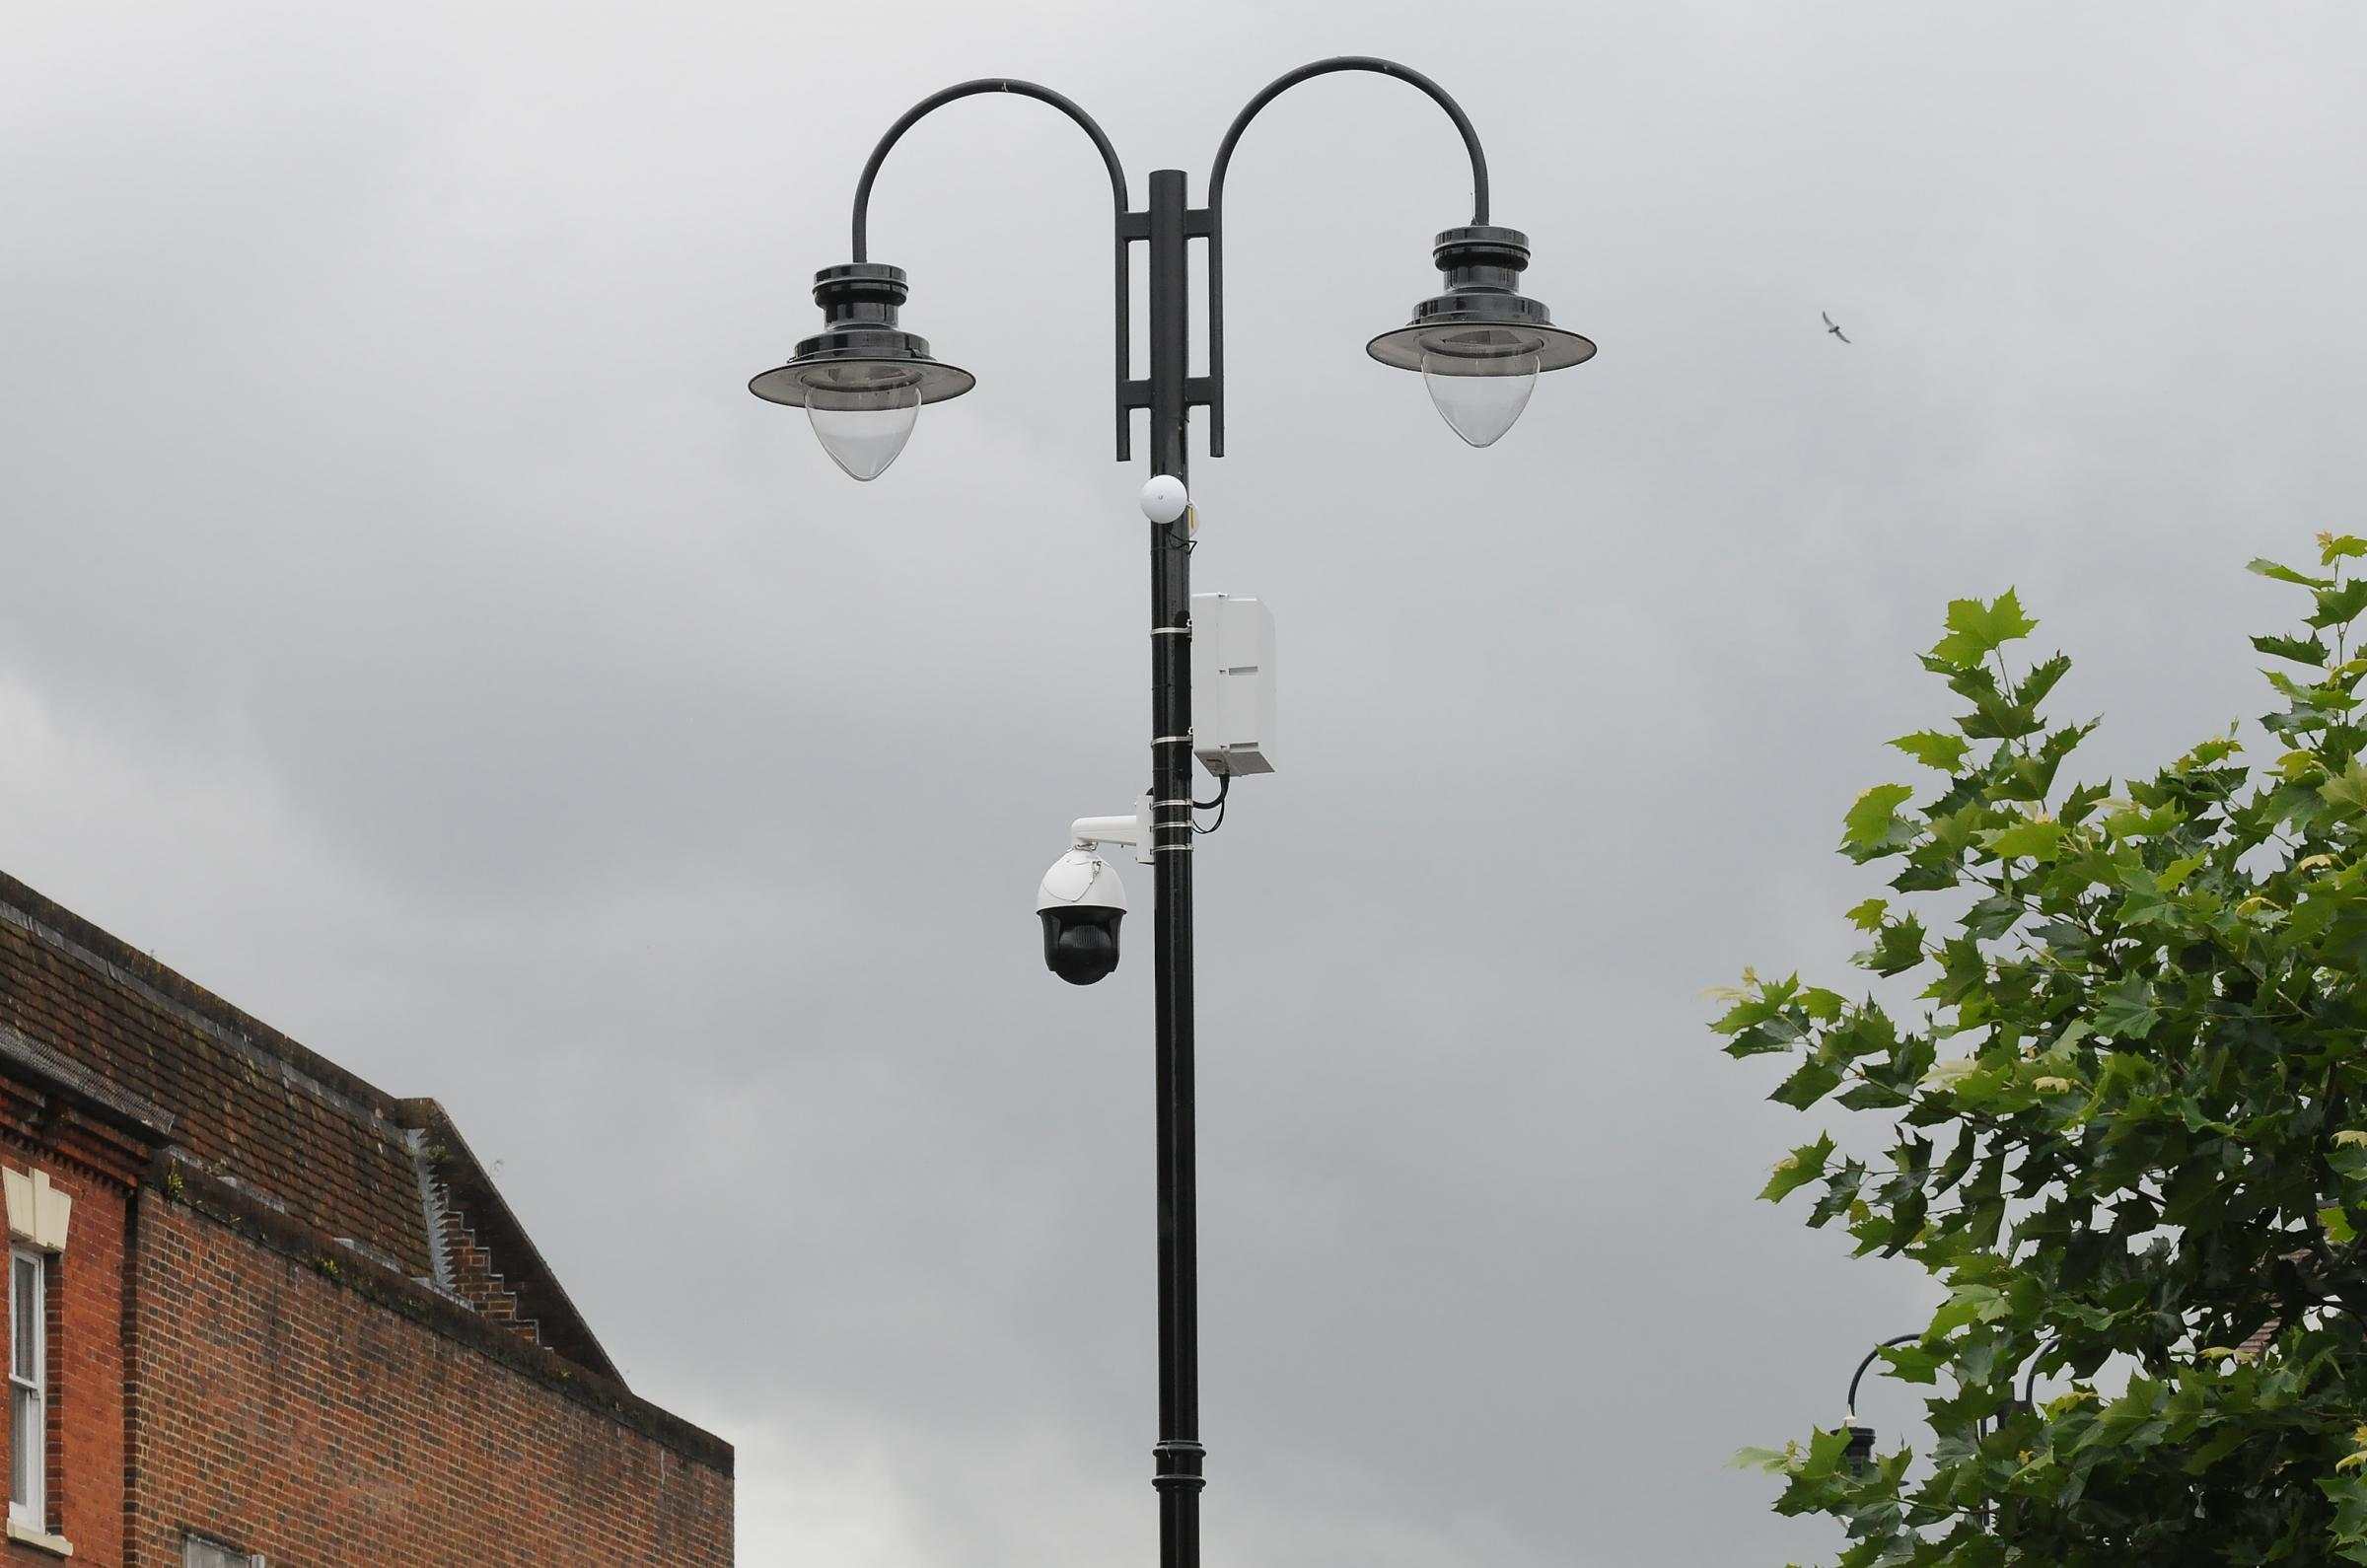 New CCTV cameras in Salisbury DC8262P5..Pictures by Tom Gregory.